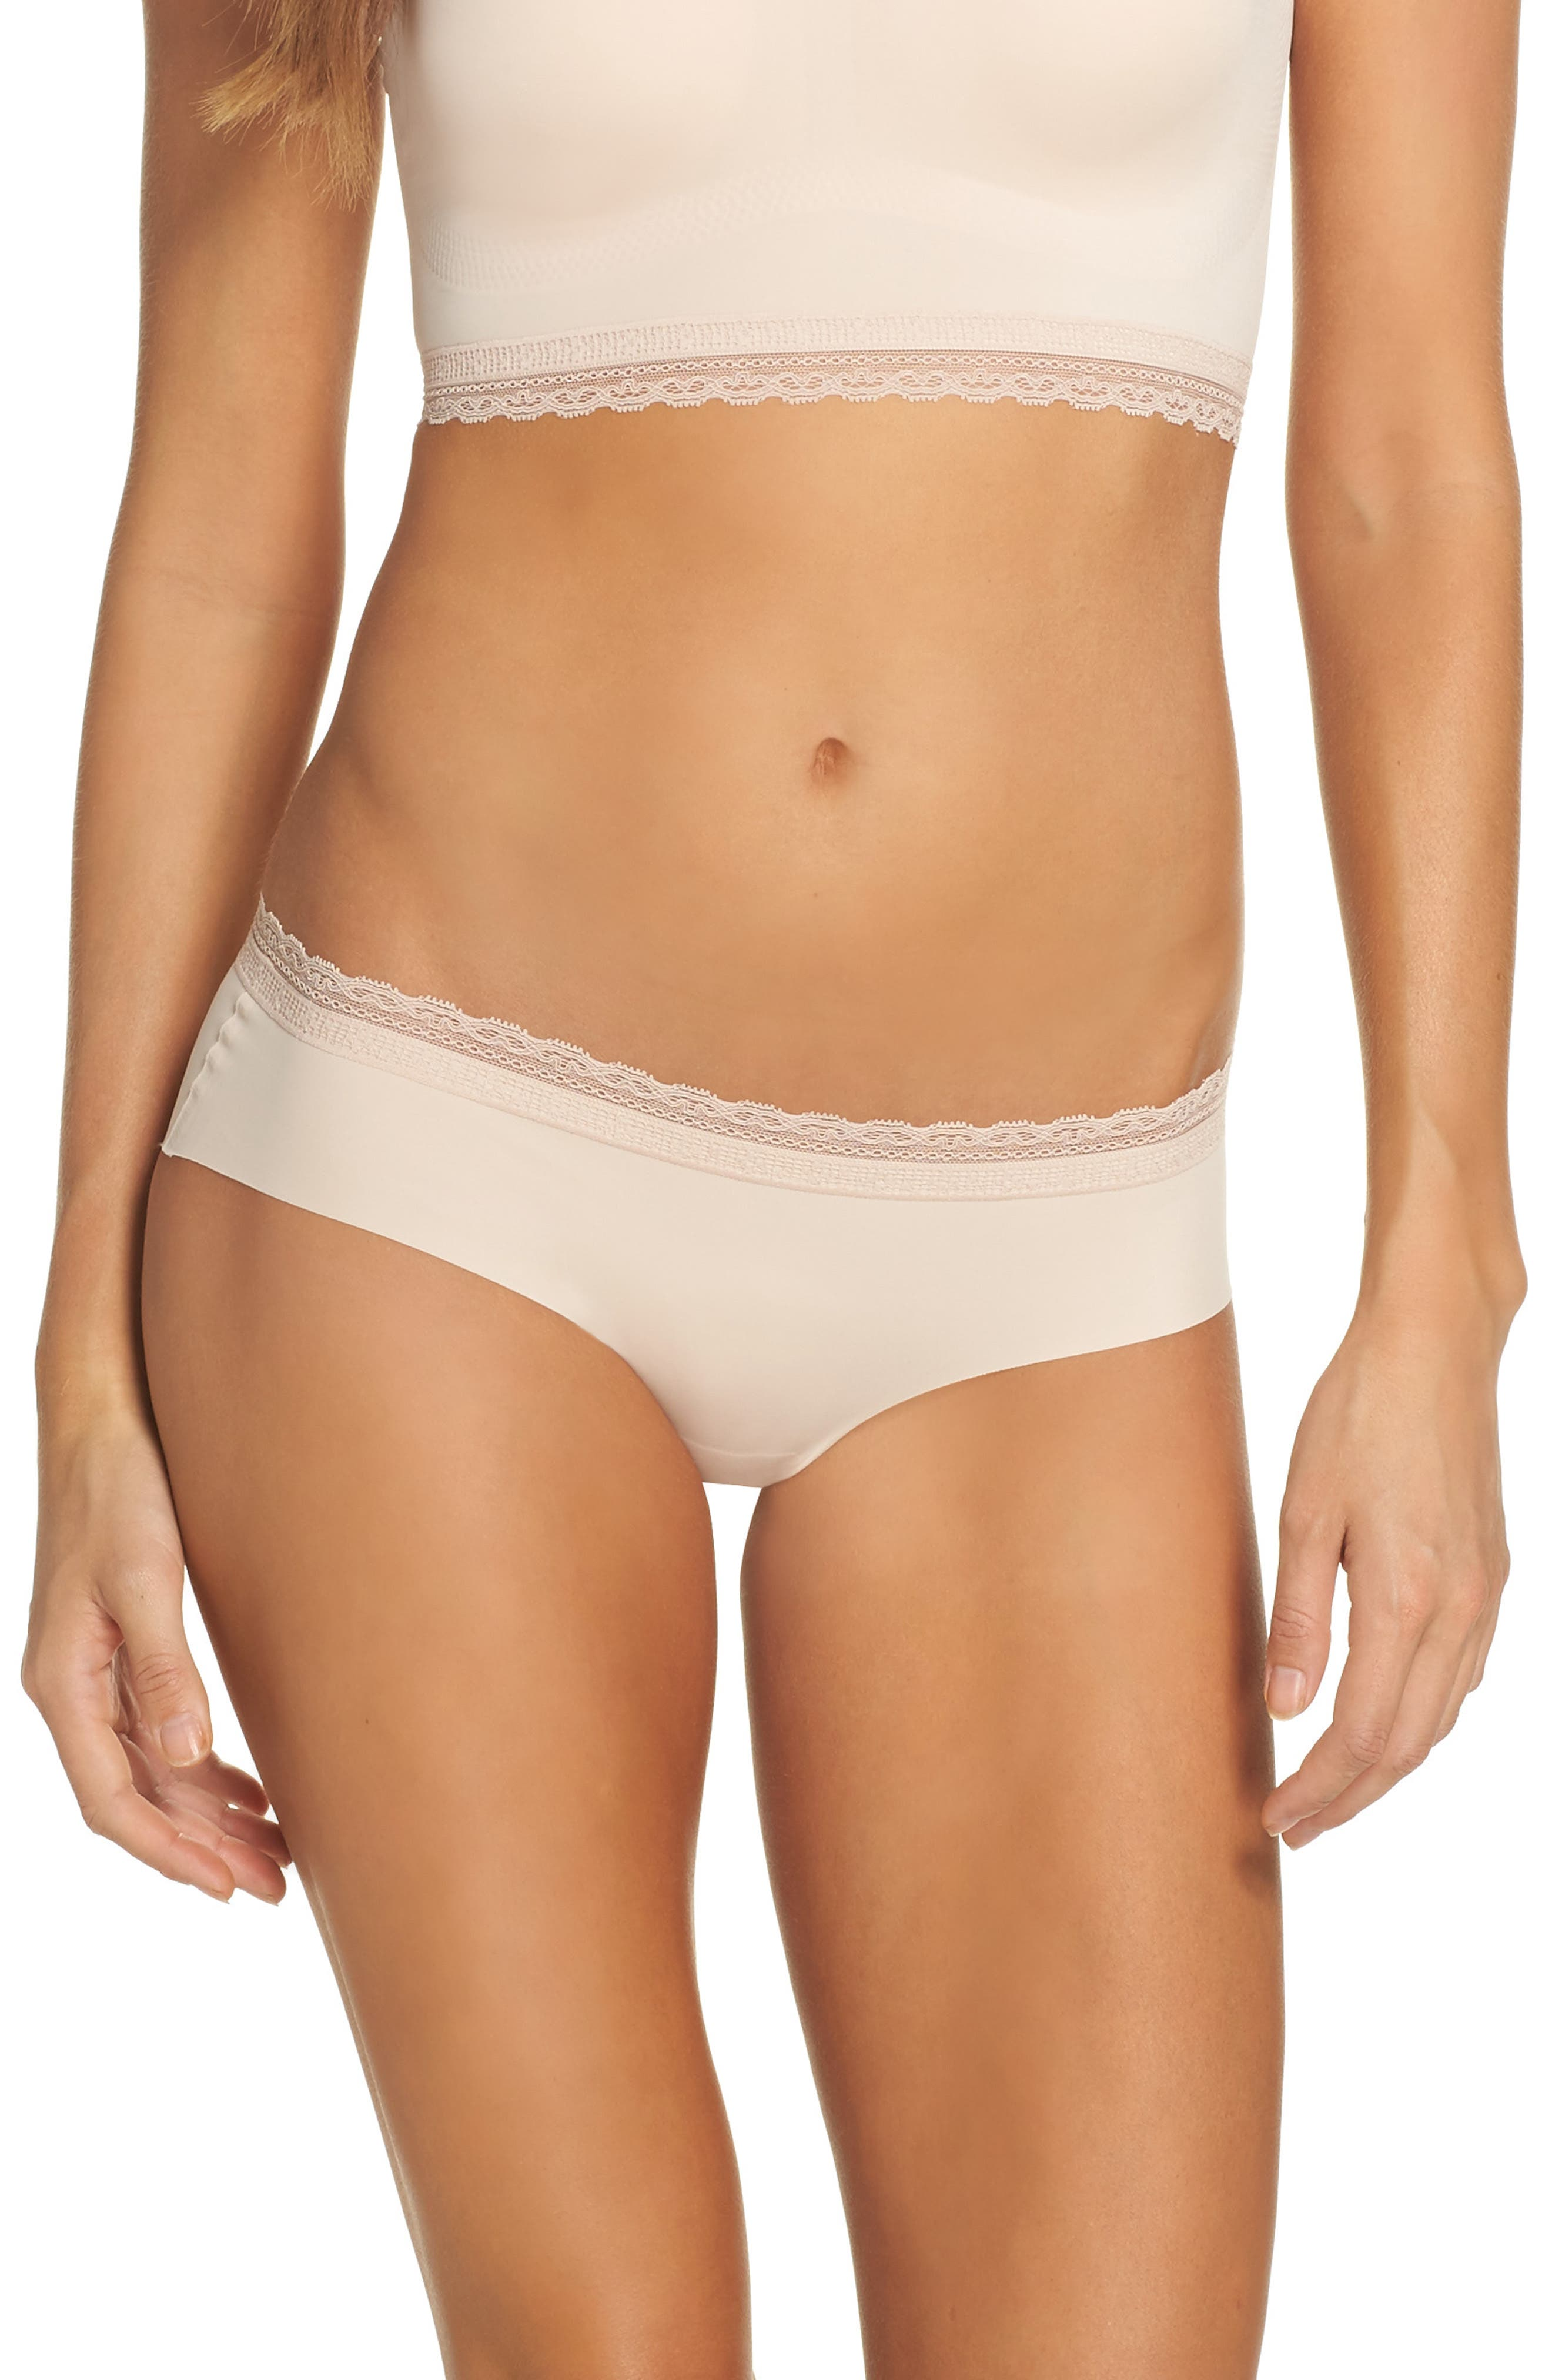 Almost Naked Lace Trim Hipster Briefs,                         Main,                         color, Rose Dust